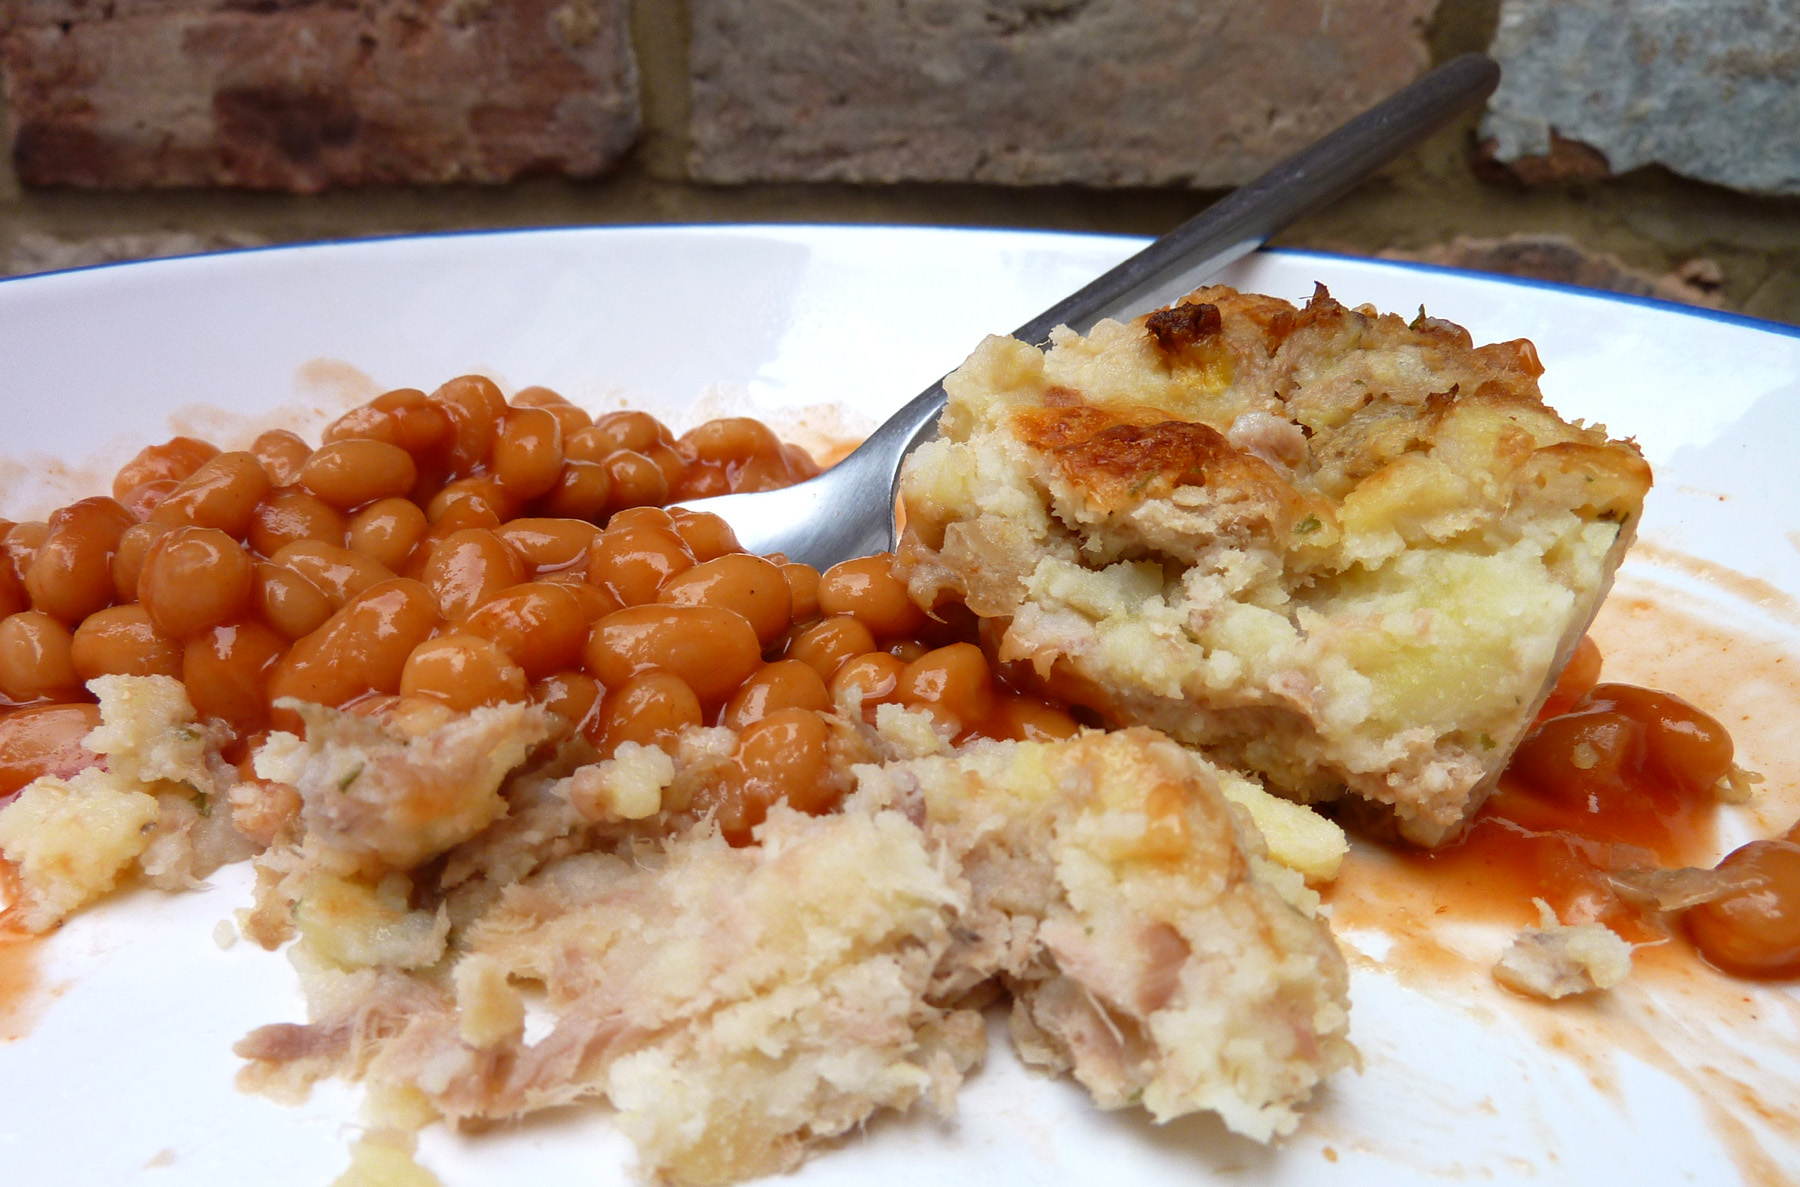 dinner - lunching on leftover fish cakes